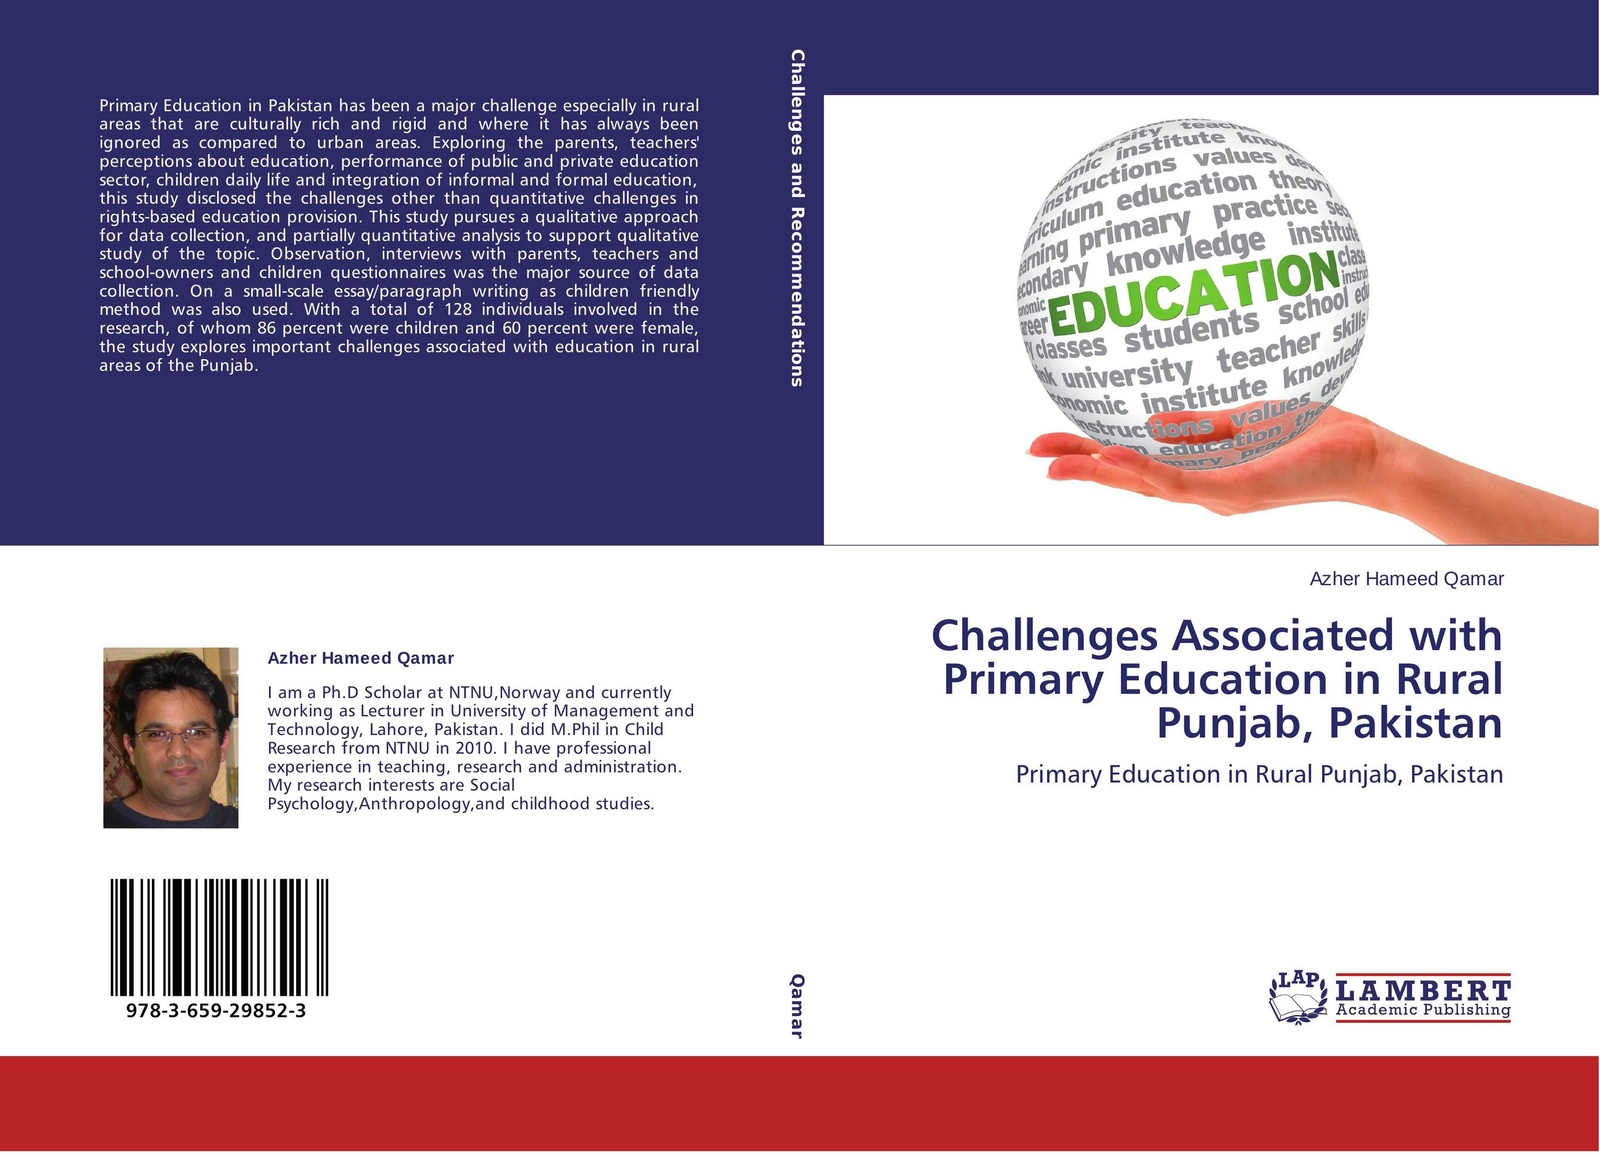 Azher Hameed Qamar Challenges Associated with Primary Education in Rural Punjab, Pakistan muhammad altaf qureshi universalization of primary education in pakistan